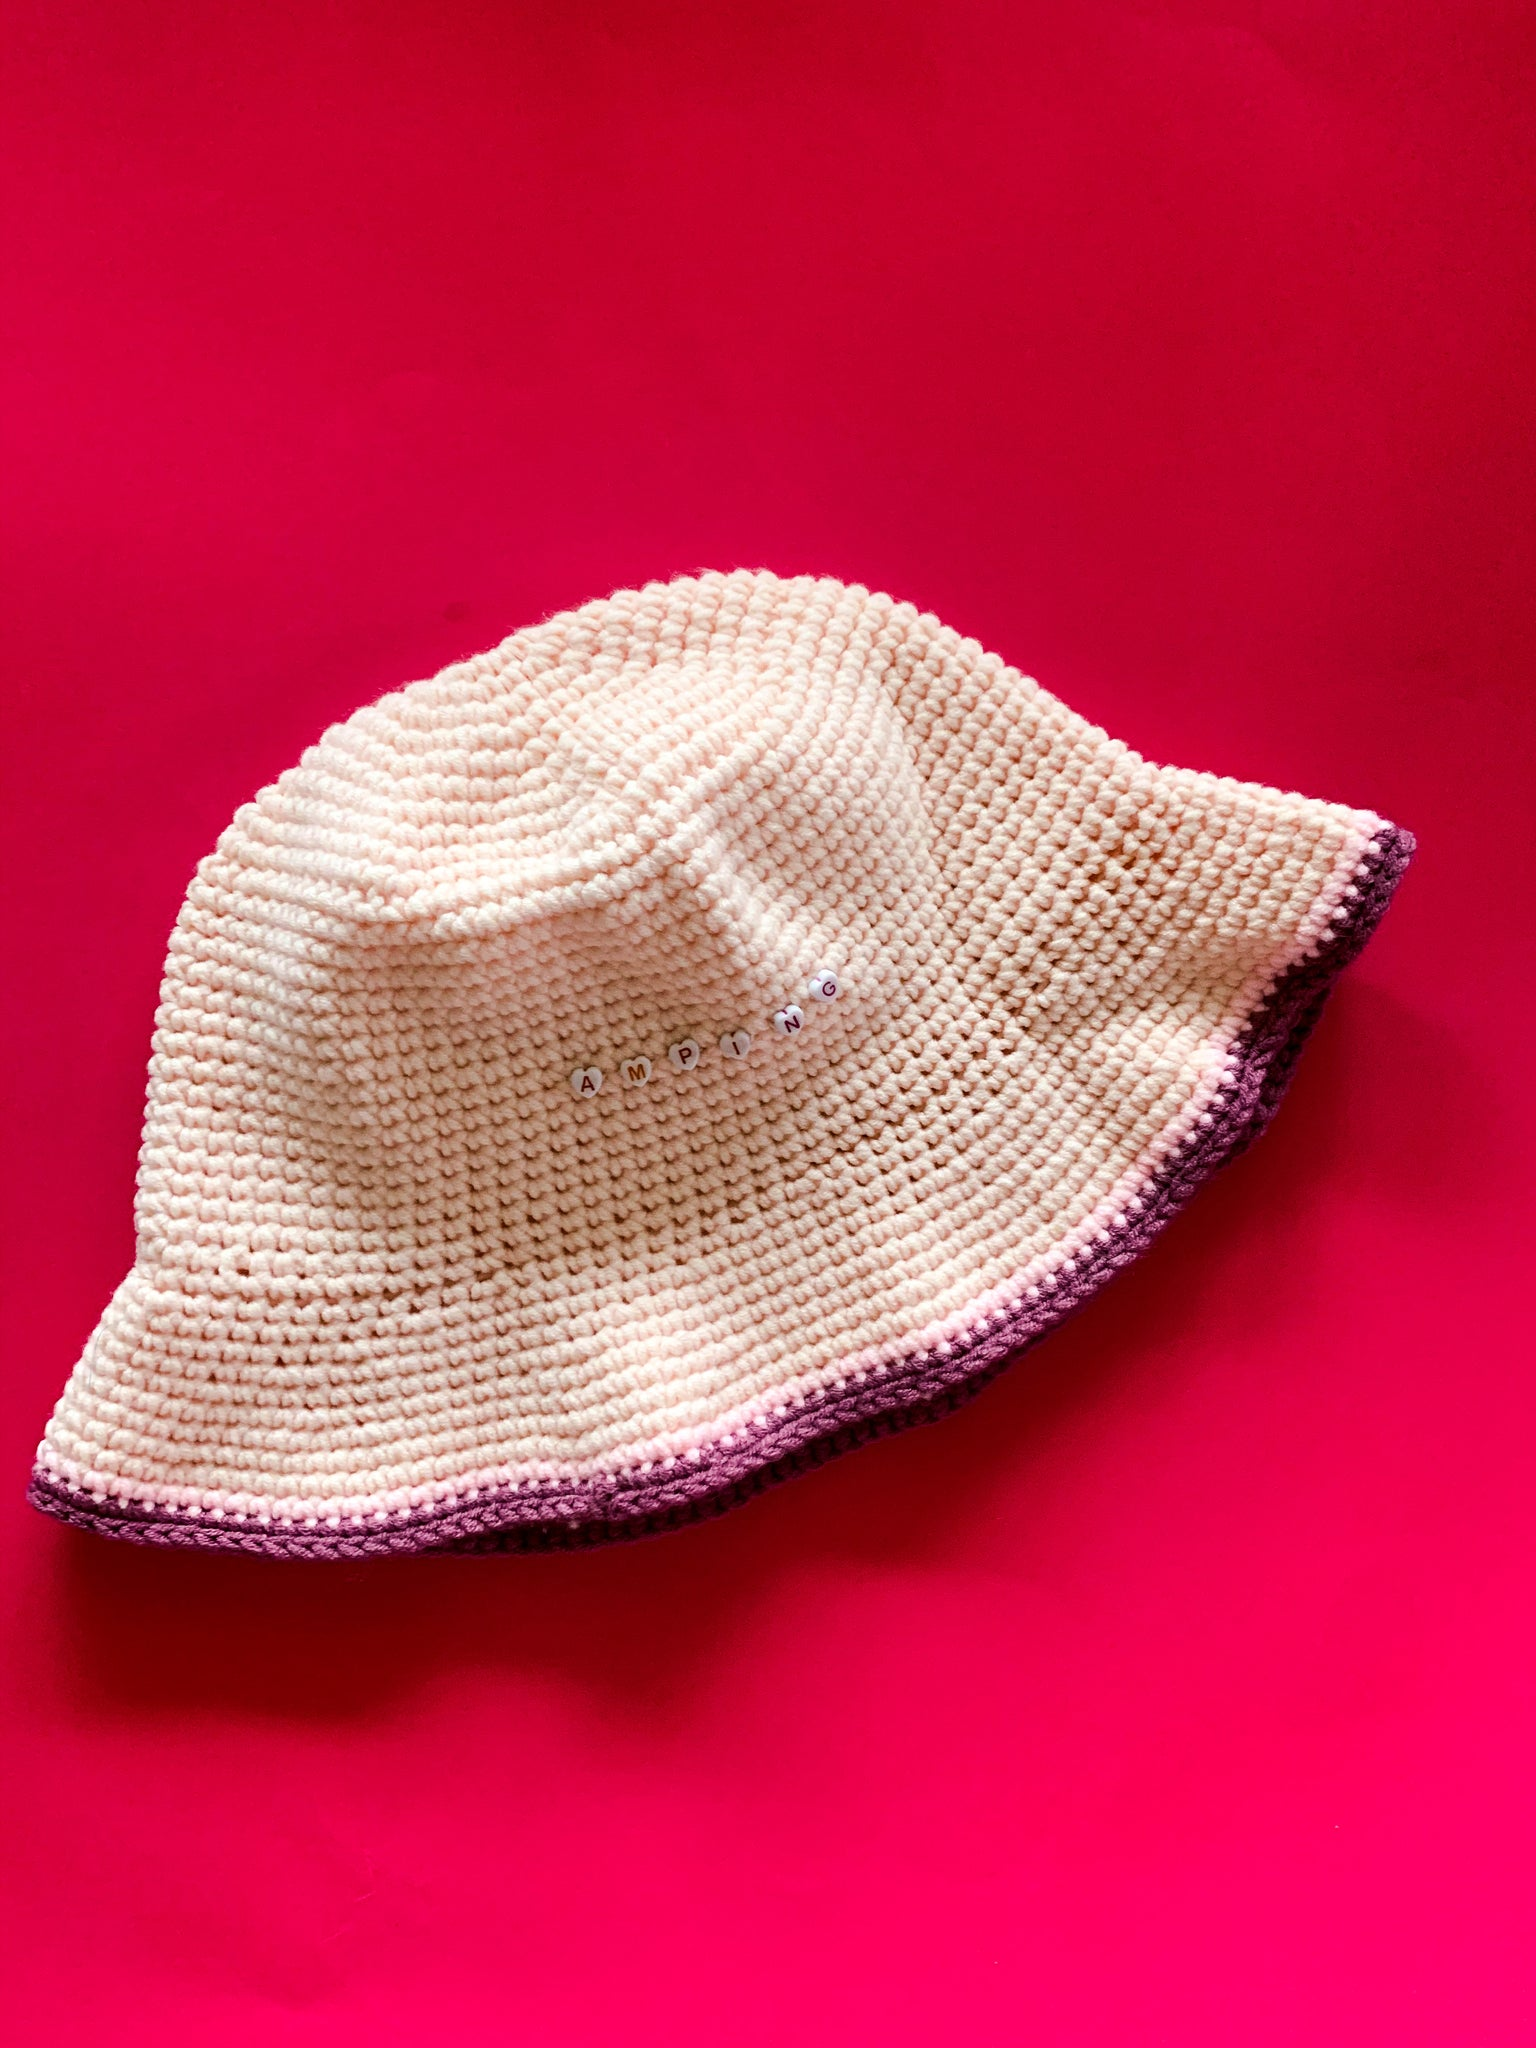 'Amping' Crocheted Bucket Hat - by Tetel